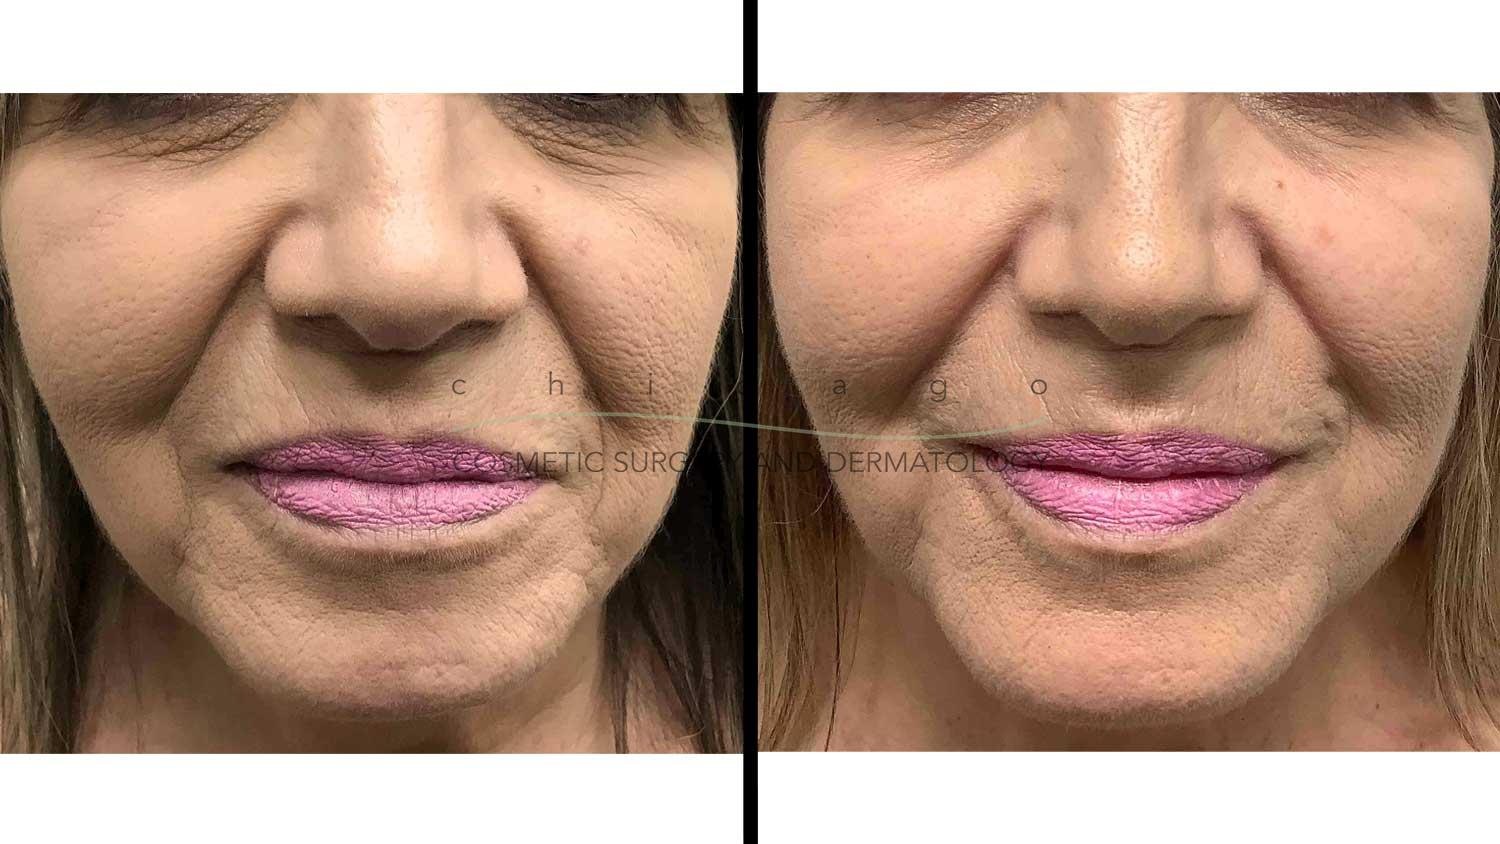 facial rejuvenation from injectable fillers with Dr. Pritzker